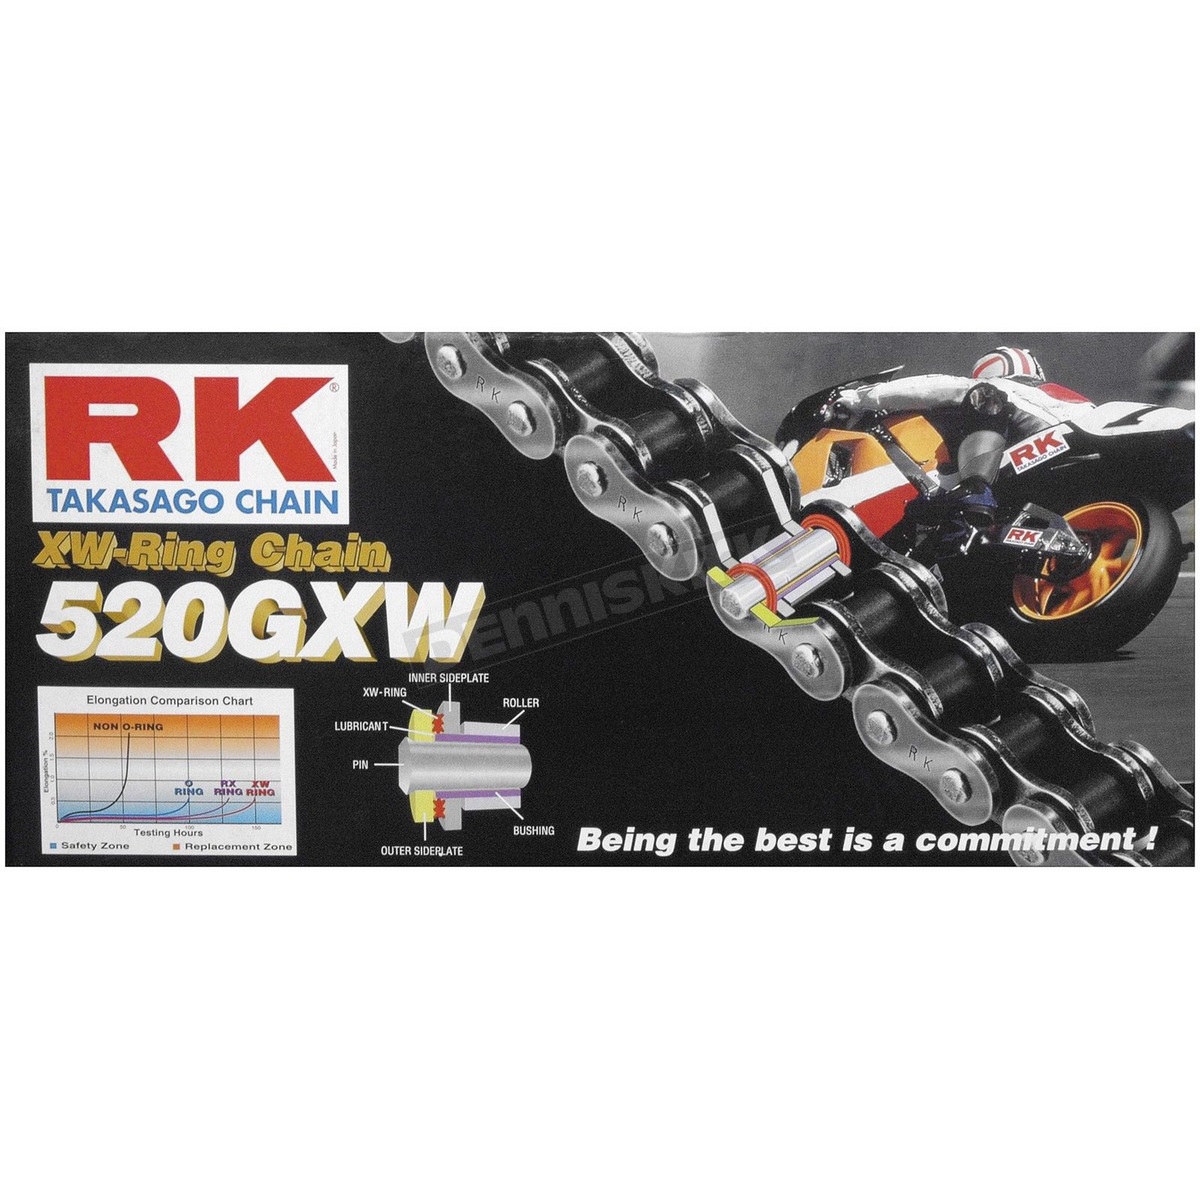 Rivet Connecting Link 520 GXW XW-Ring Chain RK 520GXW-RIVET